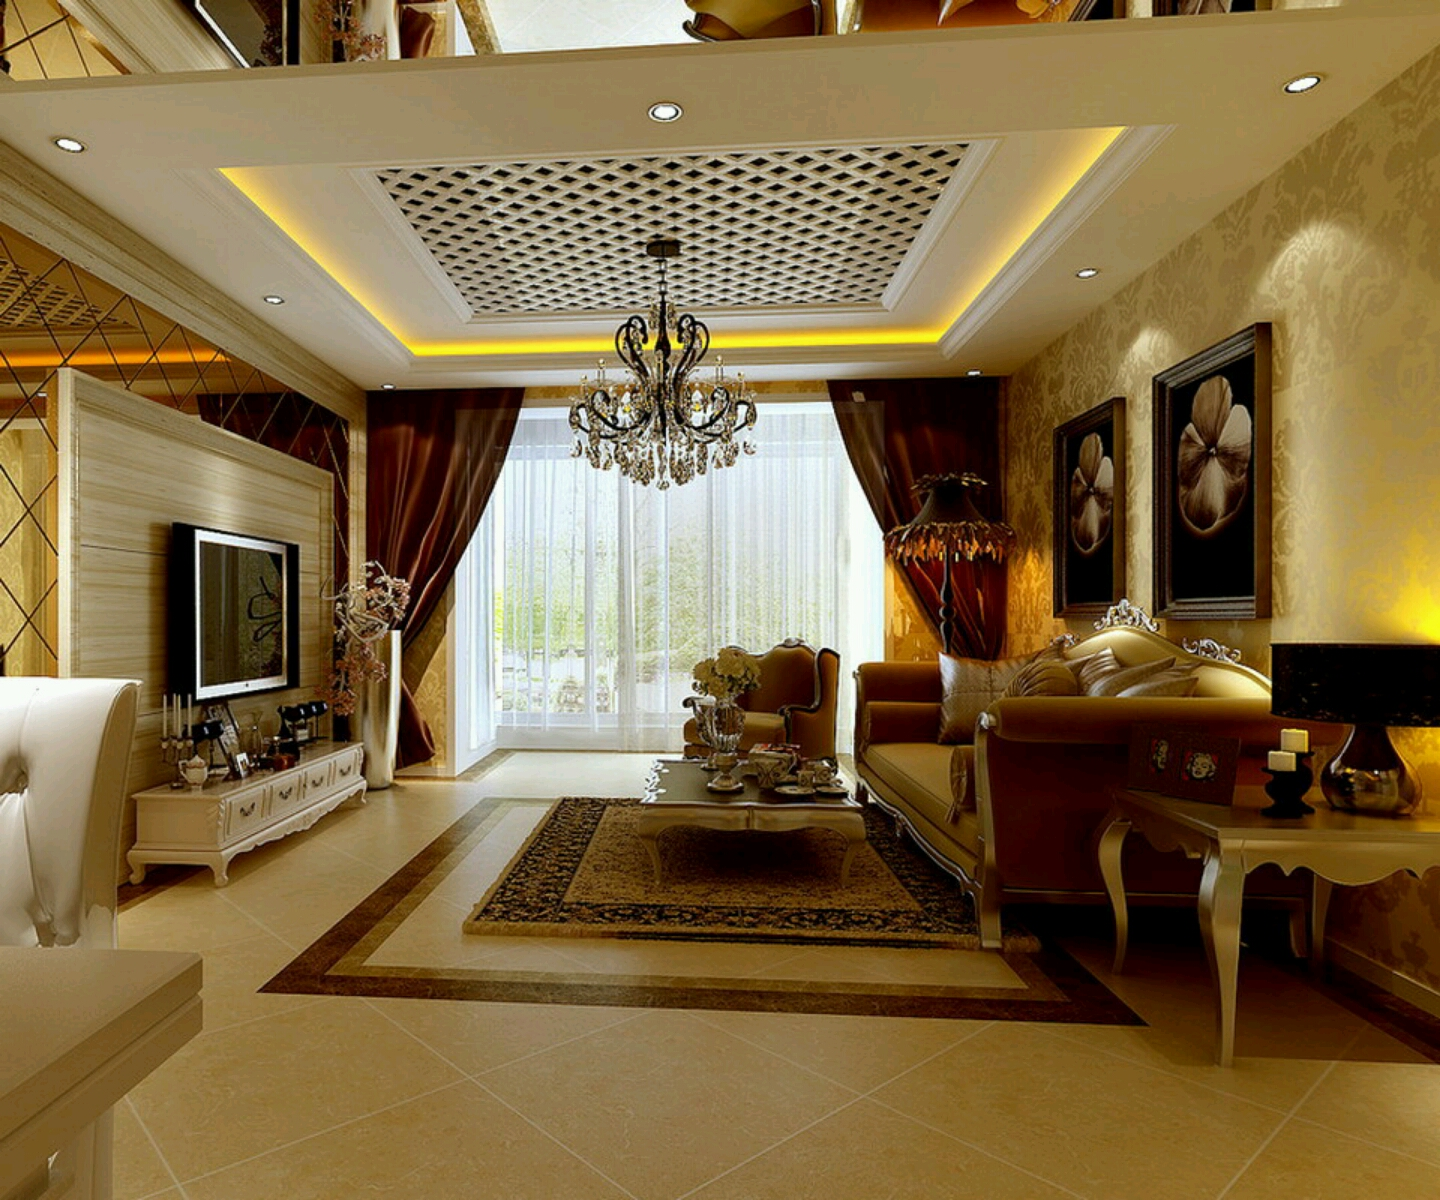 new home designs latest luxury homes interior decoration new home designs latest modern homes interior designs